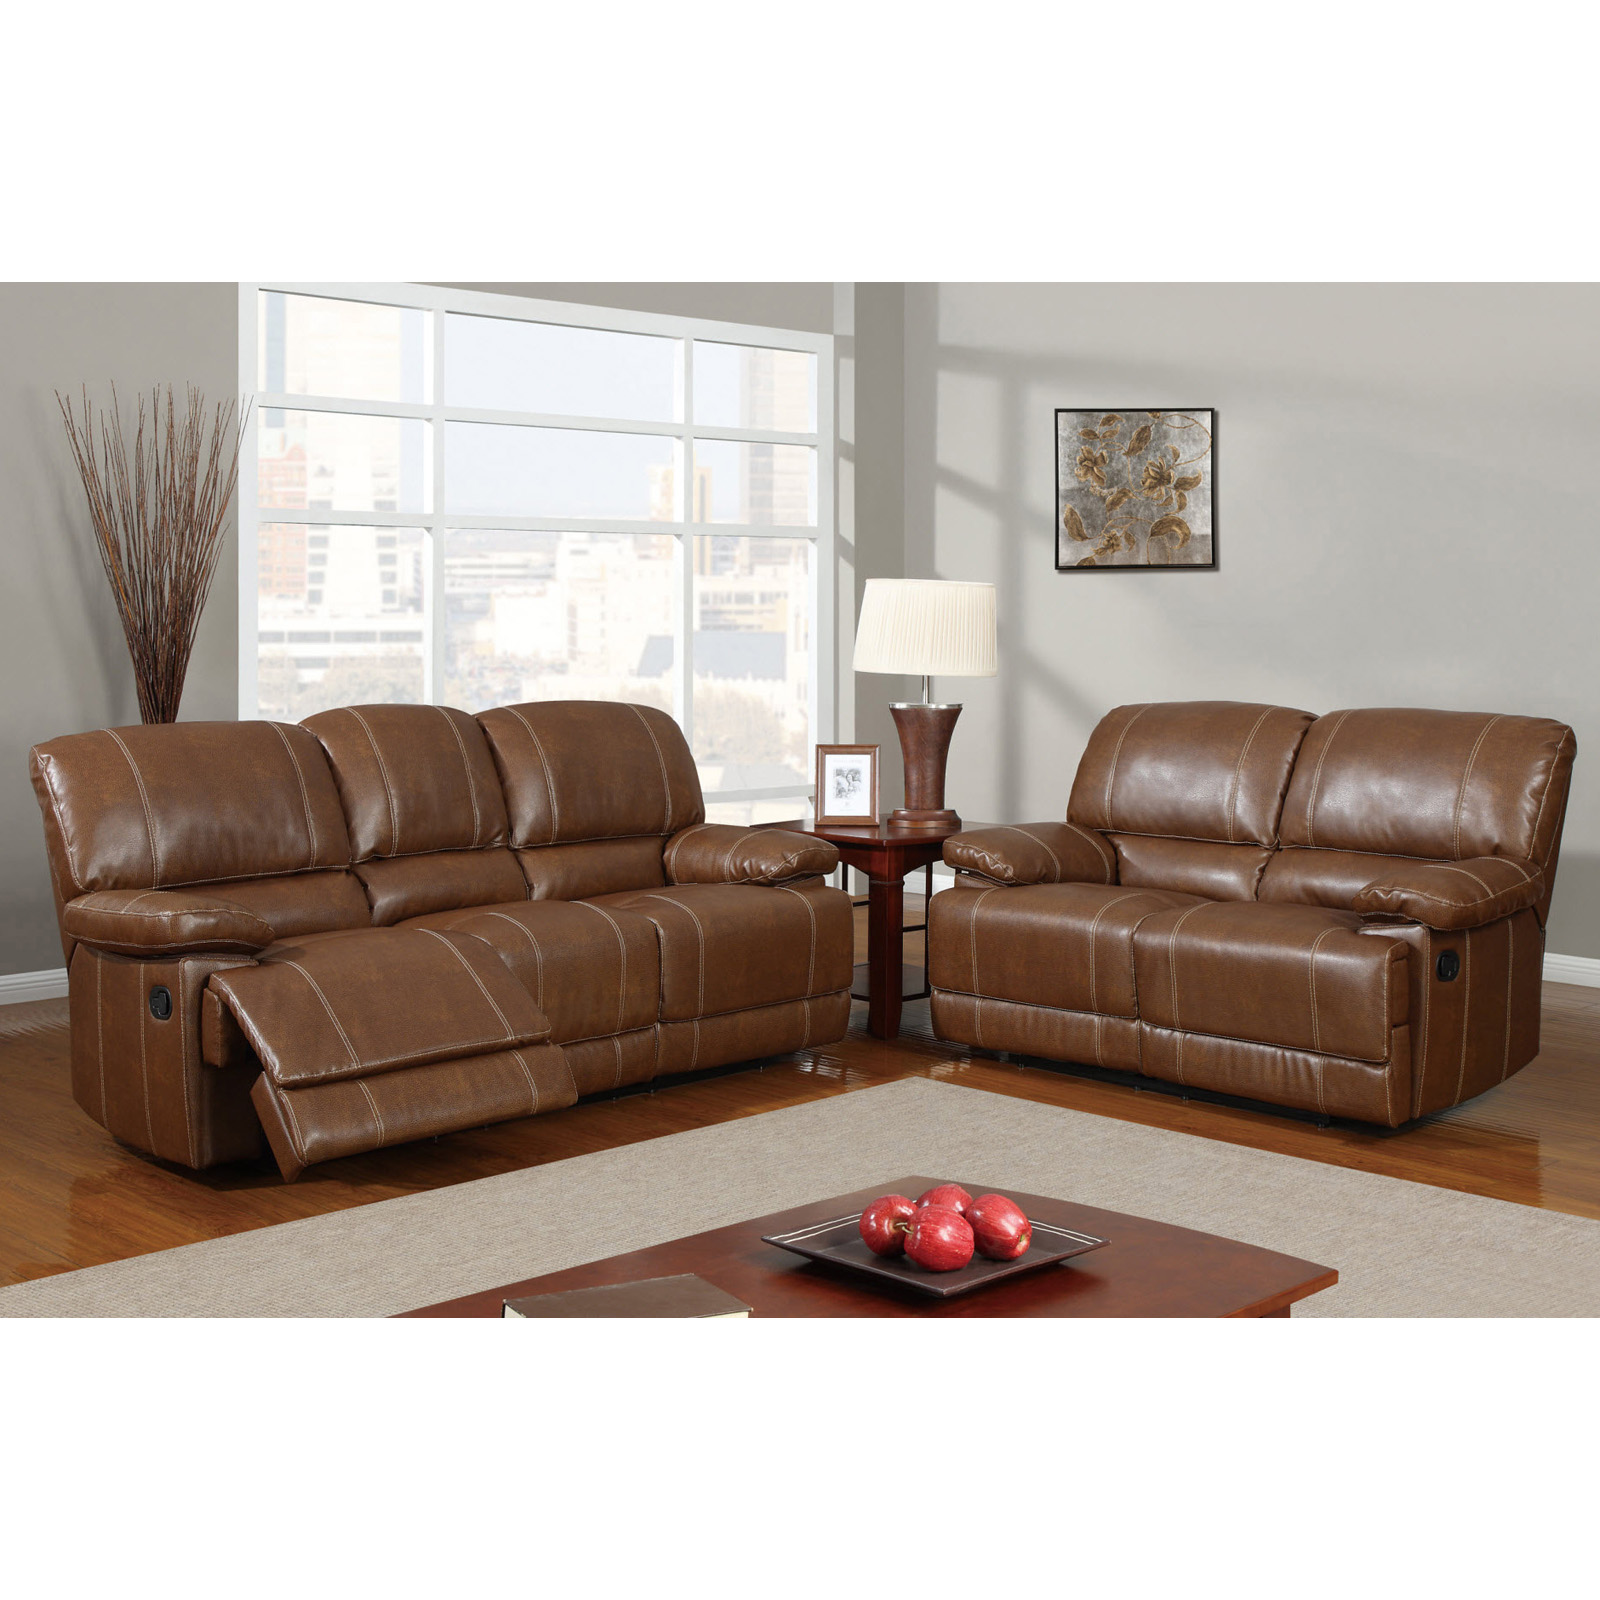 Global Furniture U9963 Leather Reclining Sofa And Loveseat Set Brown At Hayneedle